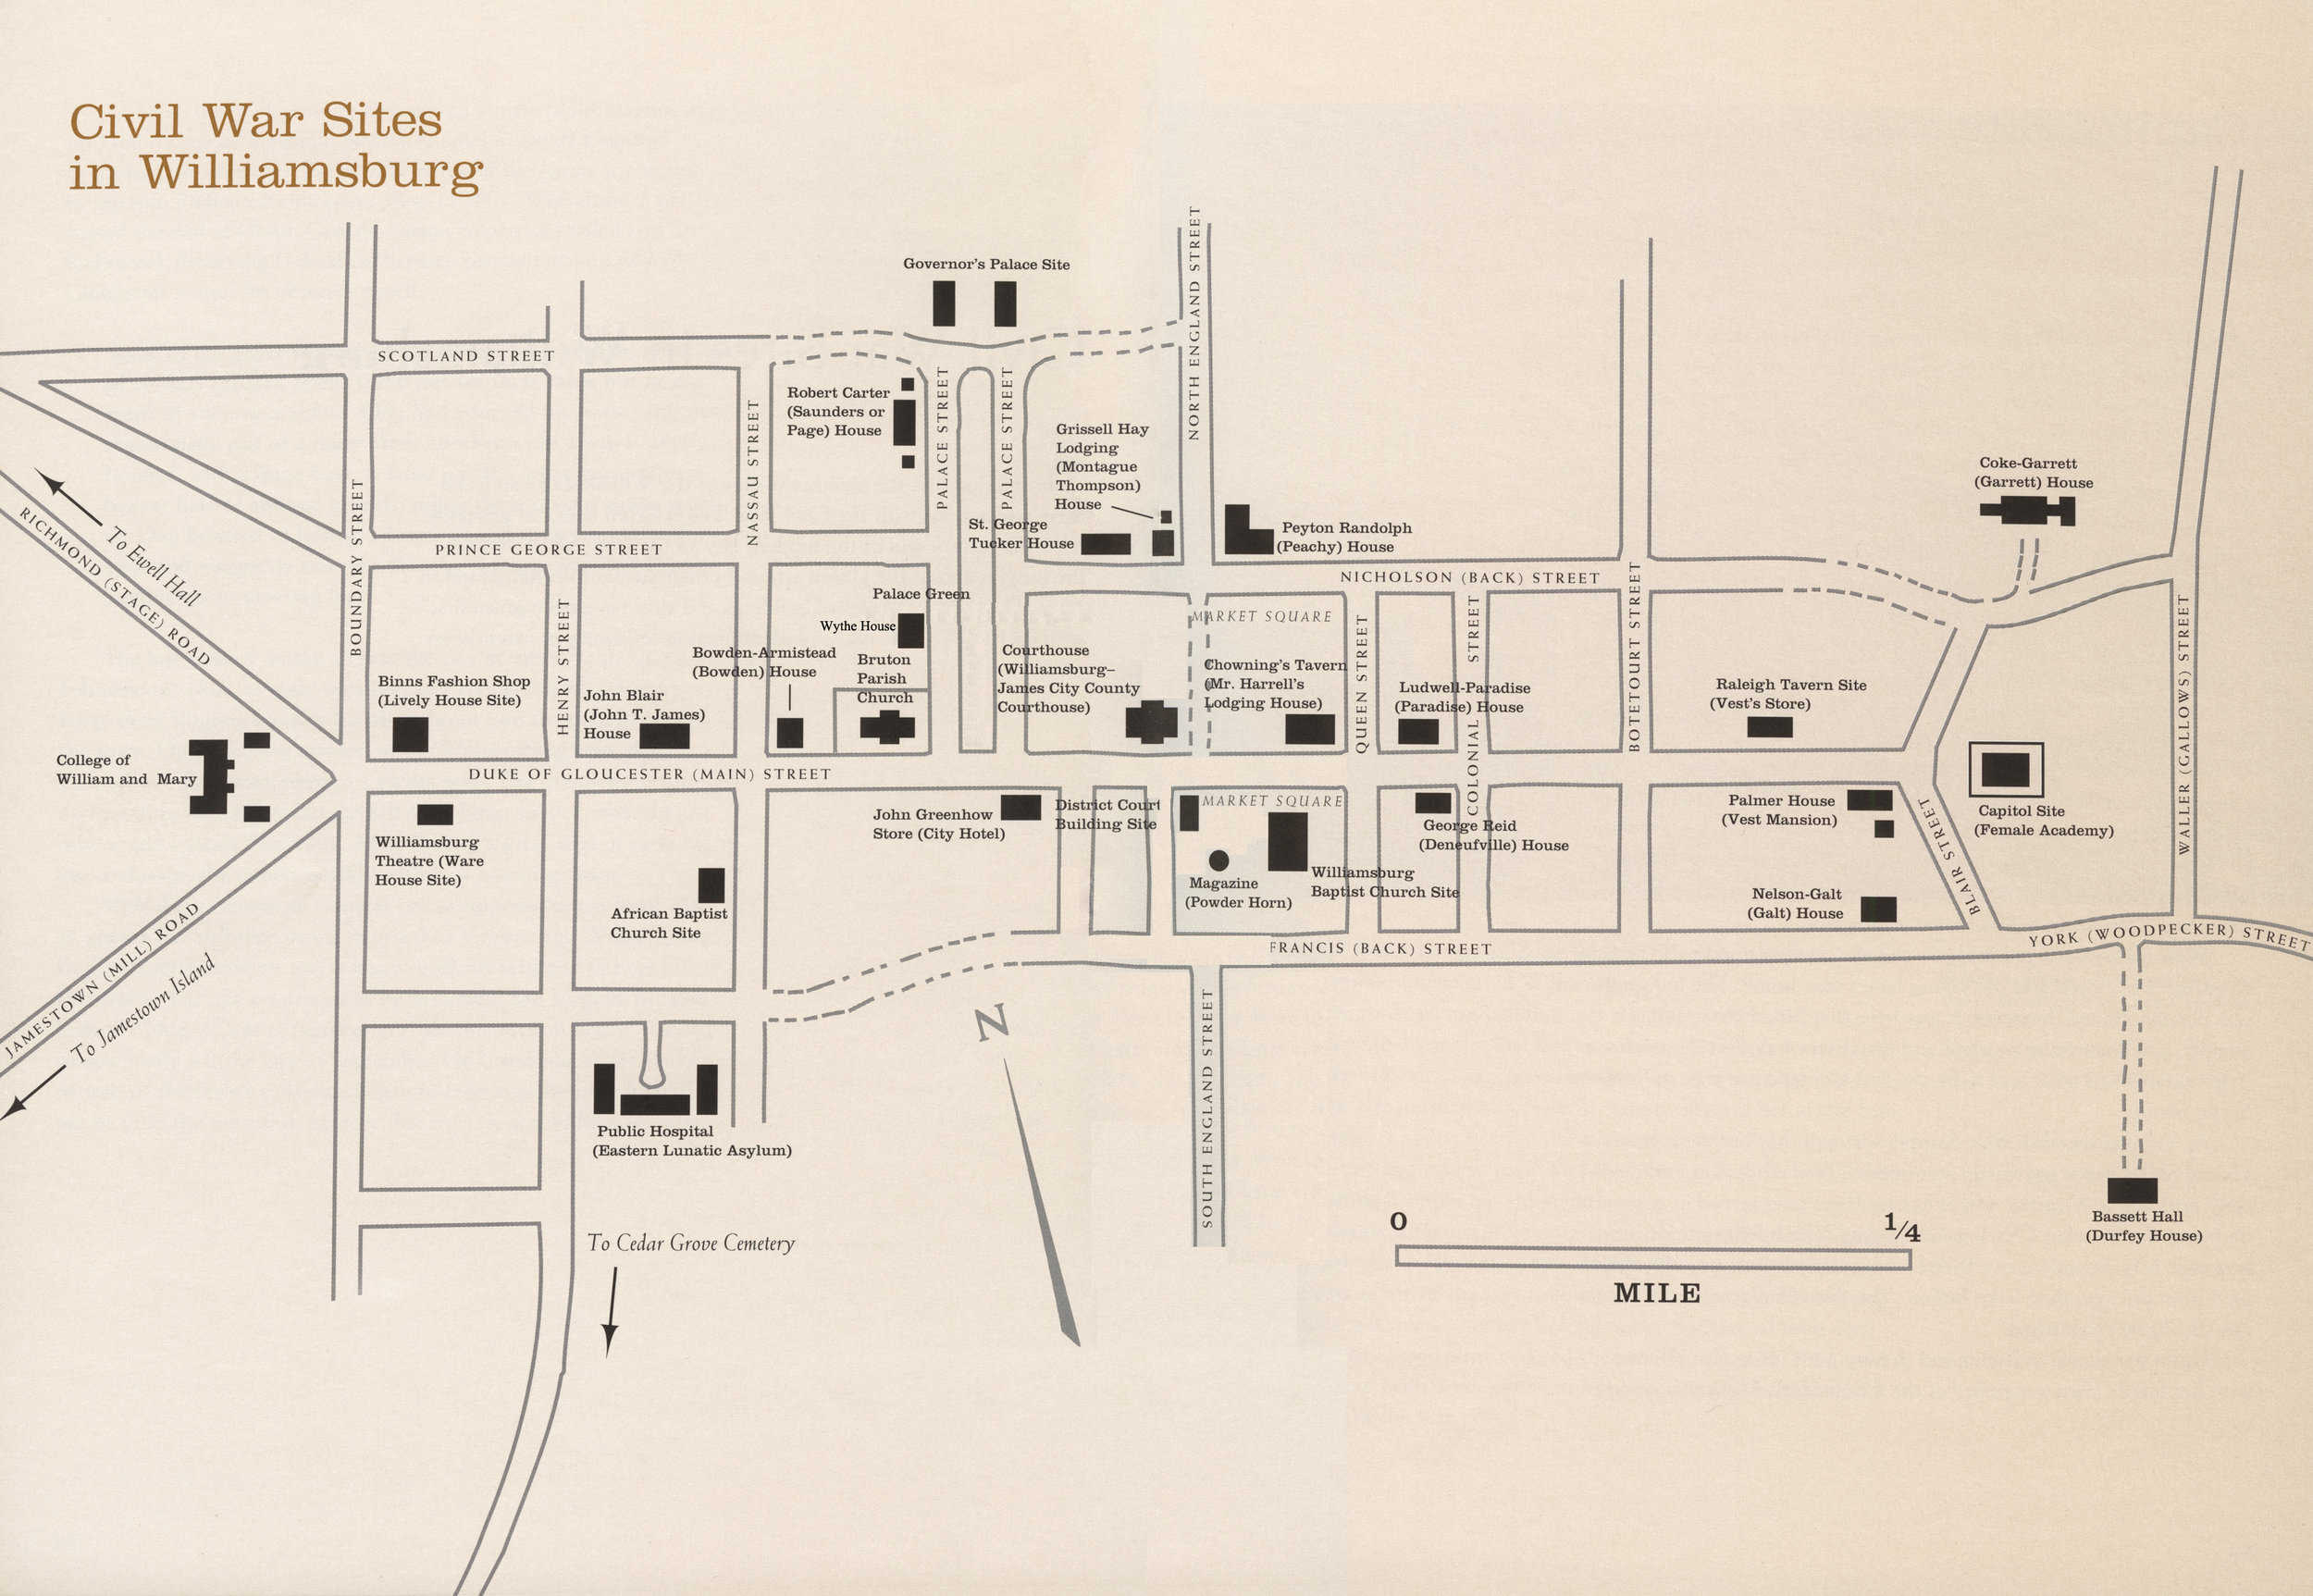 Map from  Civil War Williamsburg  by Carson O. Hudson, Jr., published 1997 by and used with the permission of The Colonial Williamsburg Foundation (Contemporary names provided with 19th century equivalents in parenthesis)